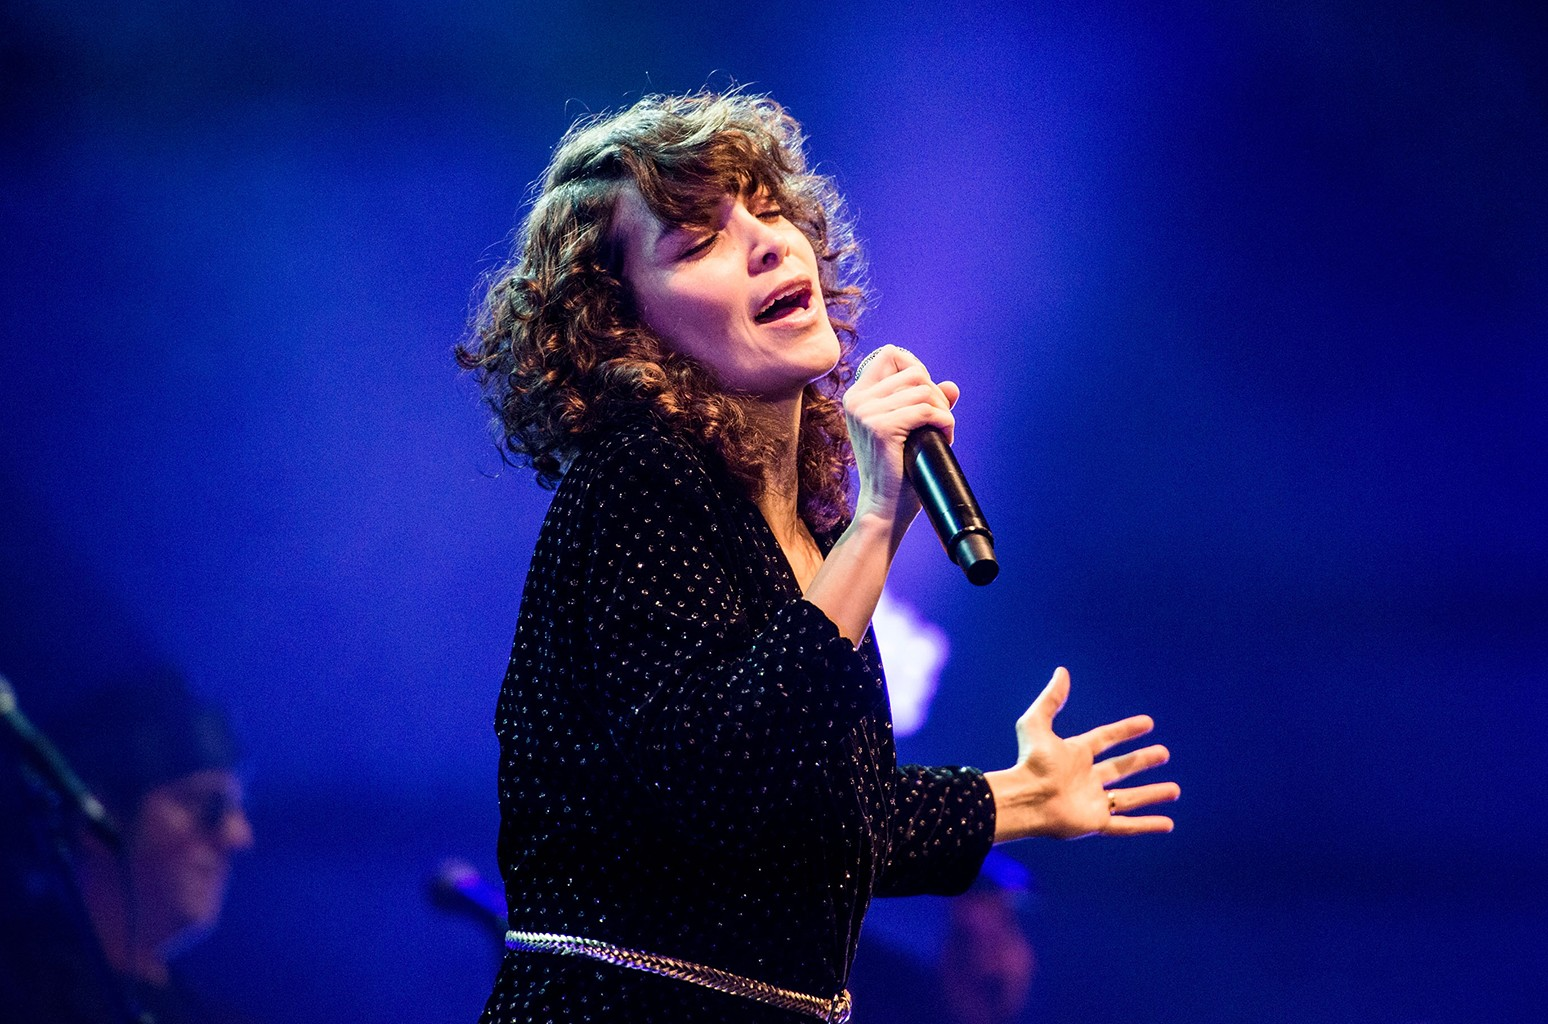 Gaby Moreno performs during a night of celebrating David Bowie at The Wiltern on Jan. 25, 2017 in Los Angeles.